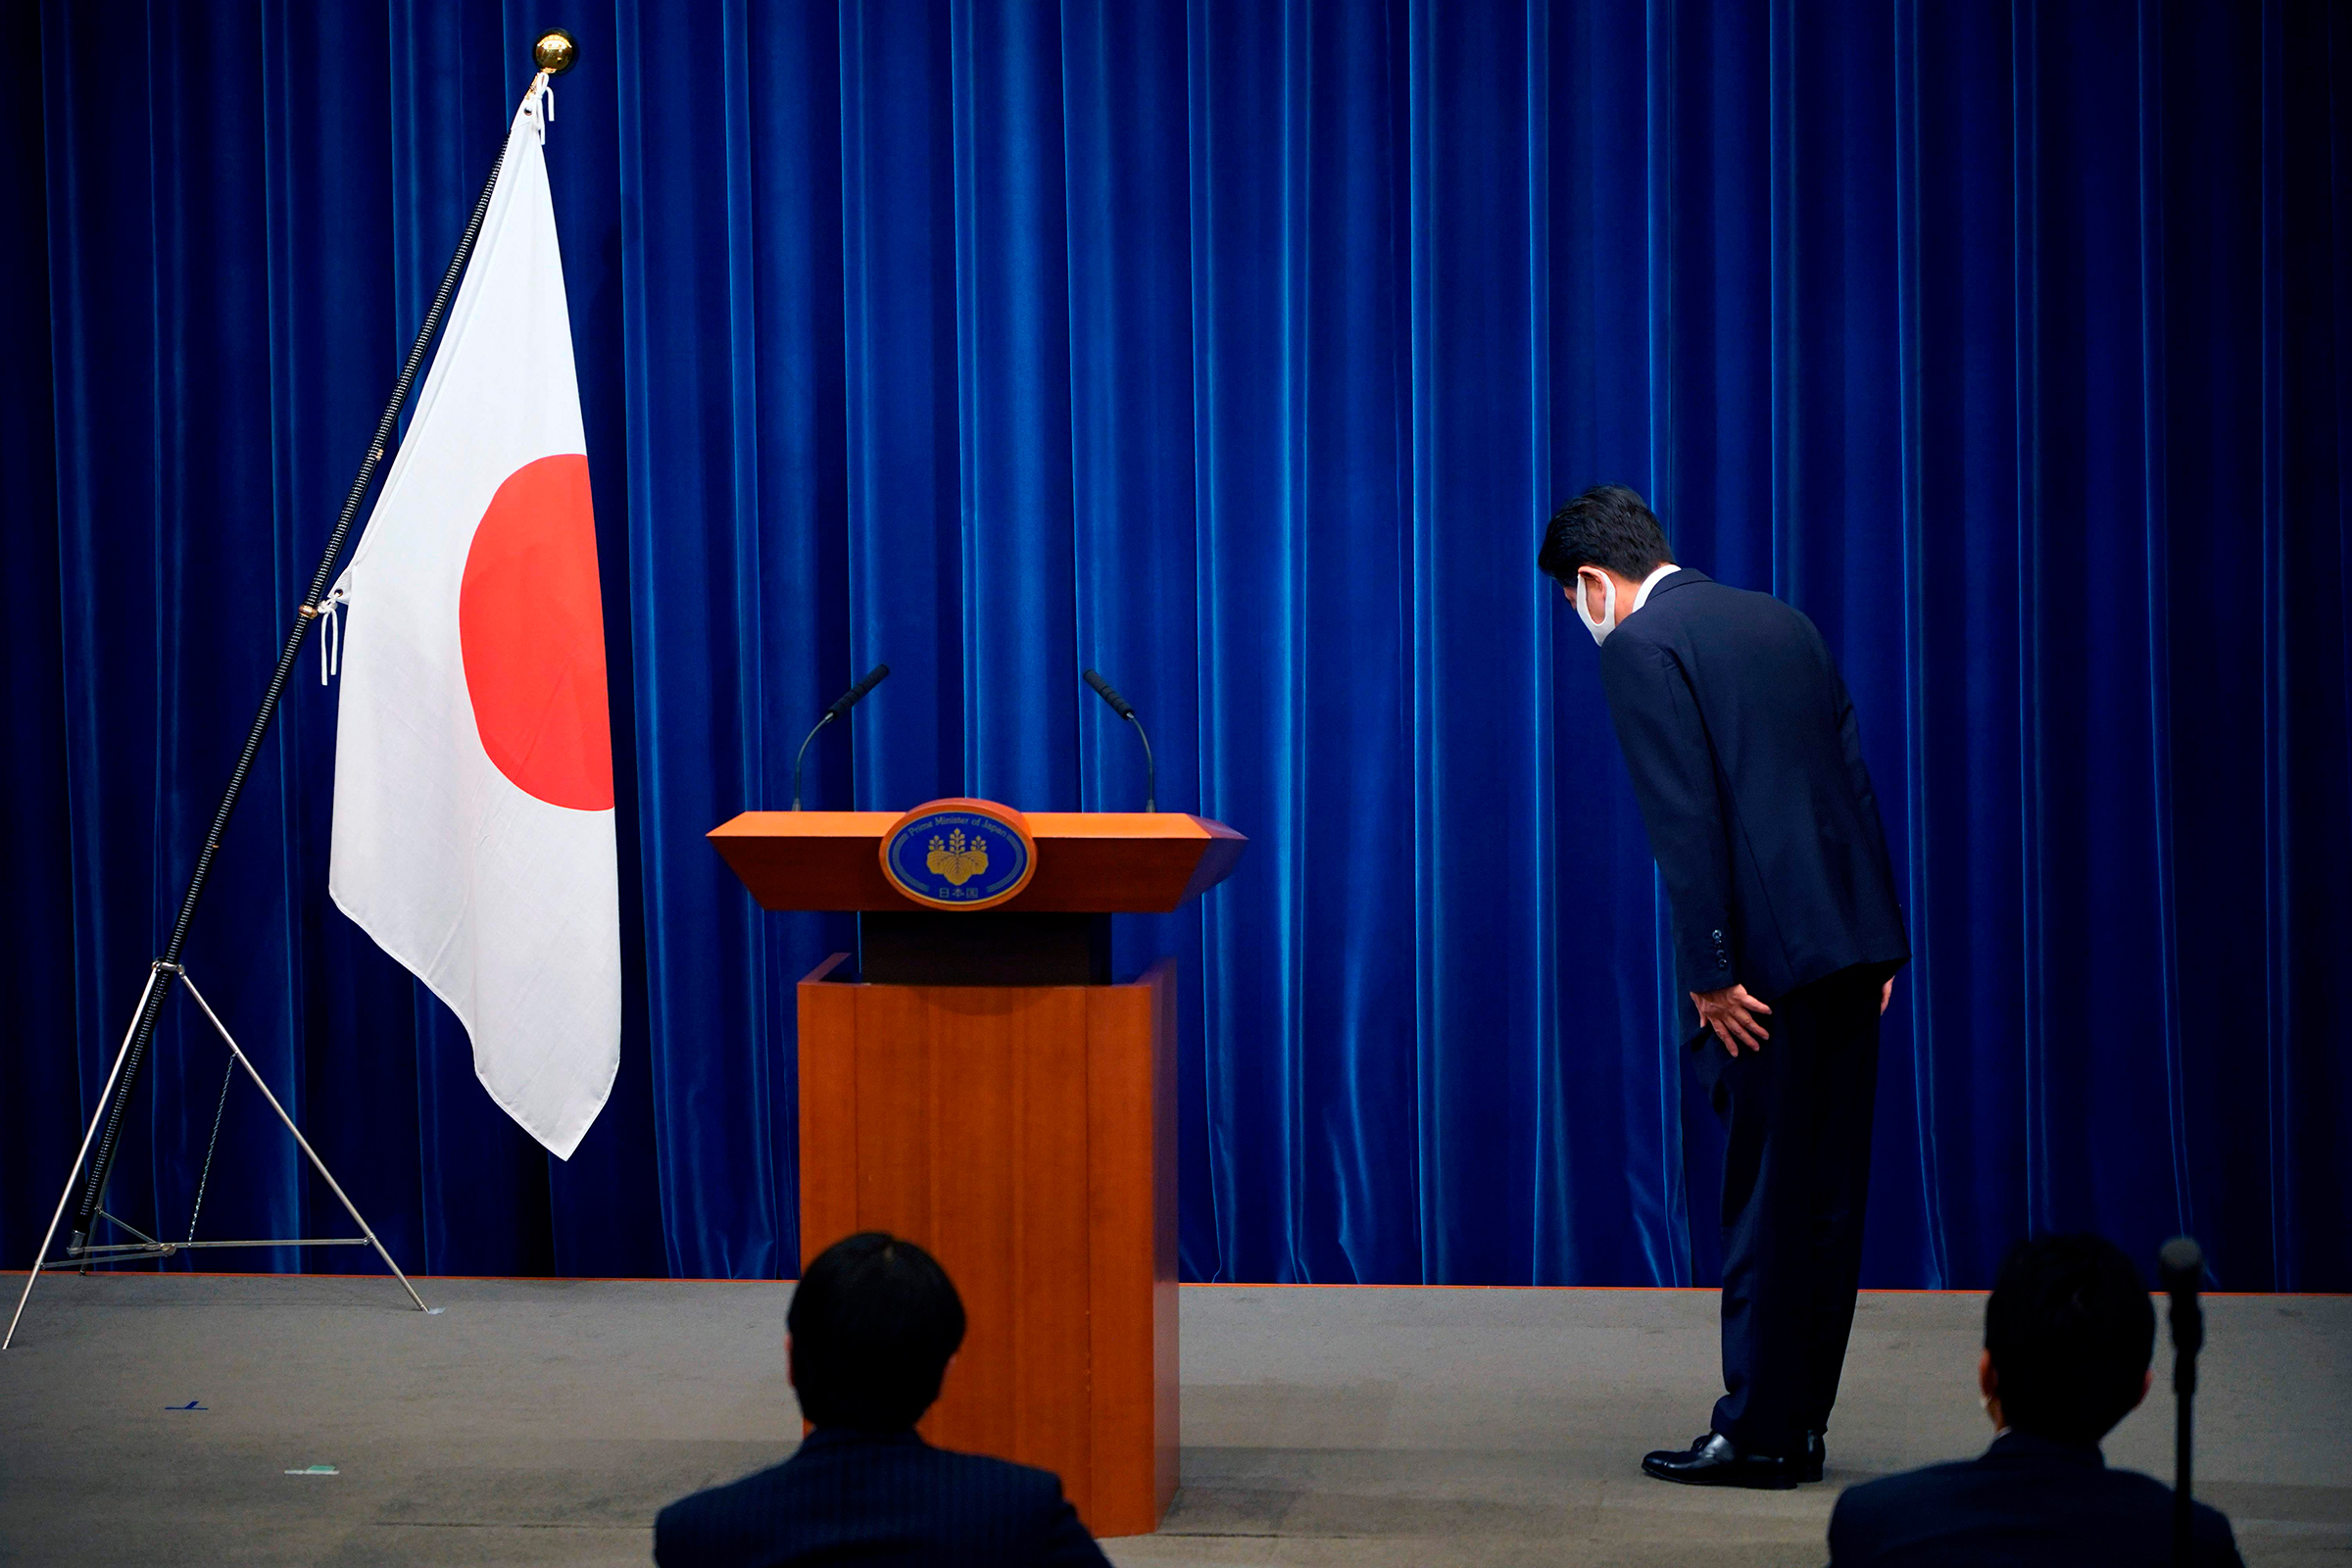 Japanese Prime Minister Shinzo Abe bows to the national flag at the start of a press conference announcing he will resign over health problems on August 28, at the prime minister's official residence in Tokyo